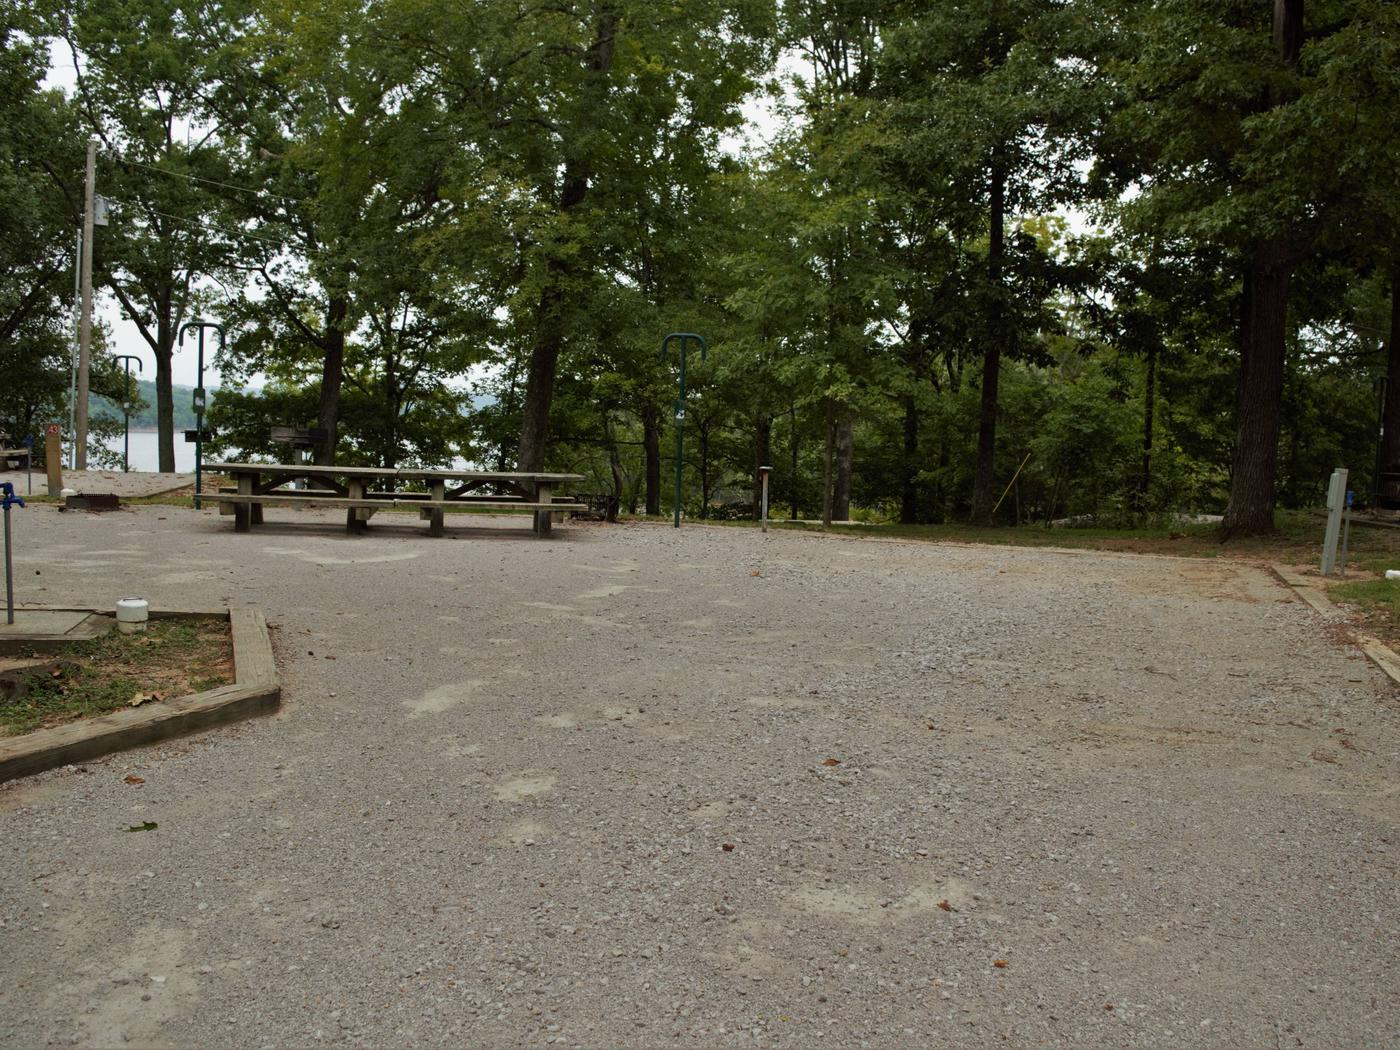 WILLOW GROVE CAMPGROUND SITE #41